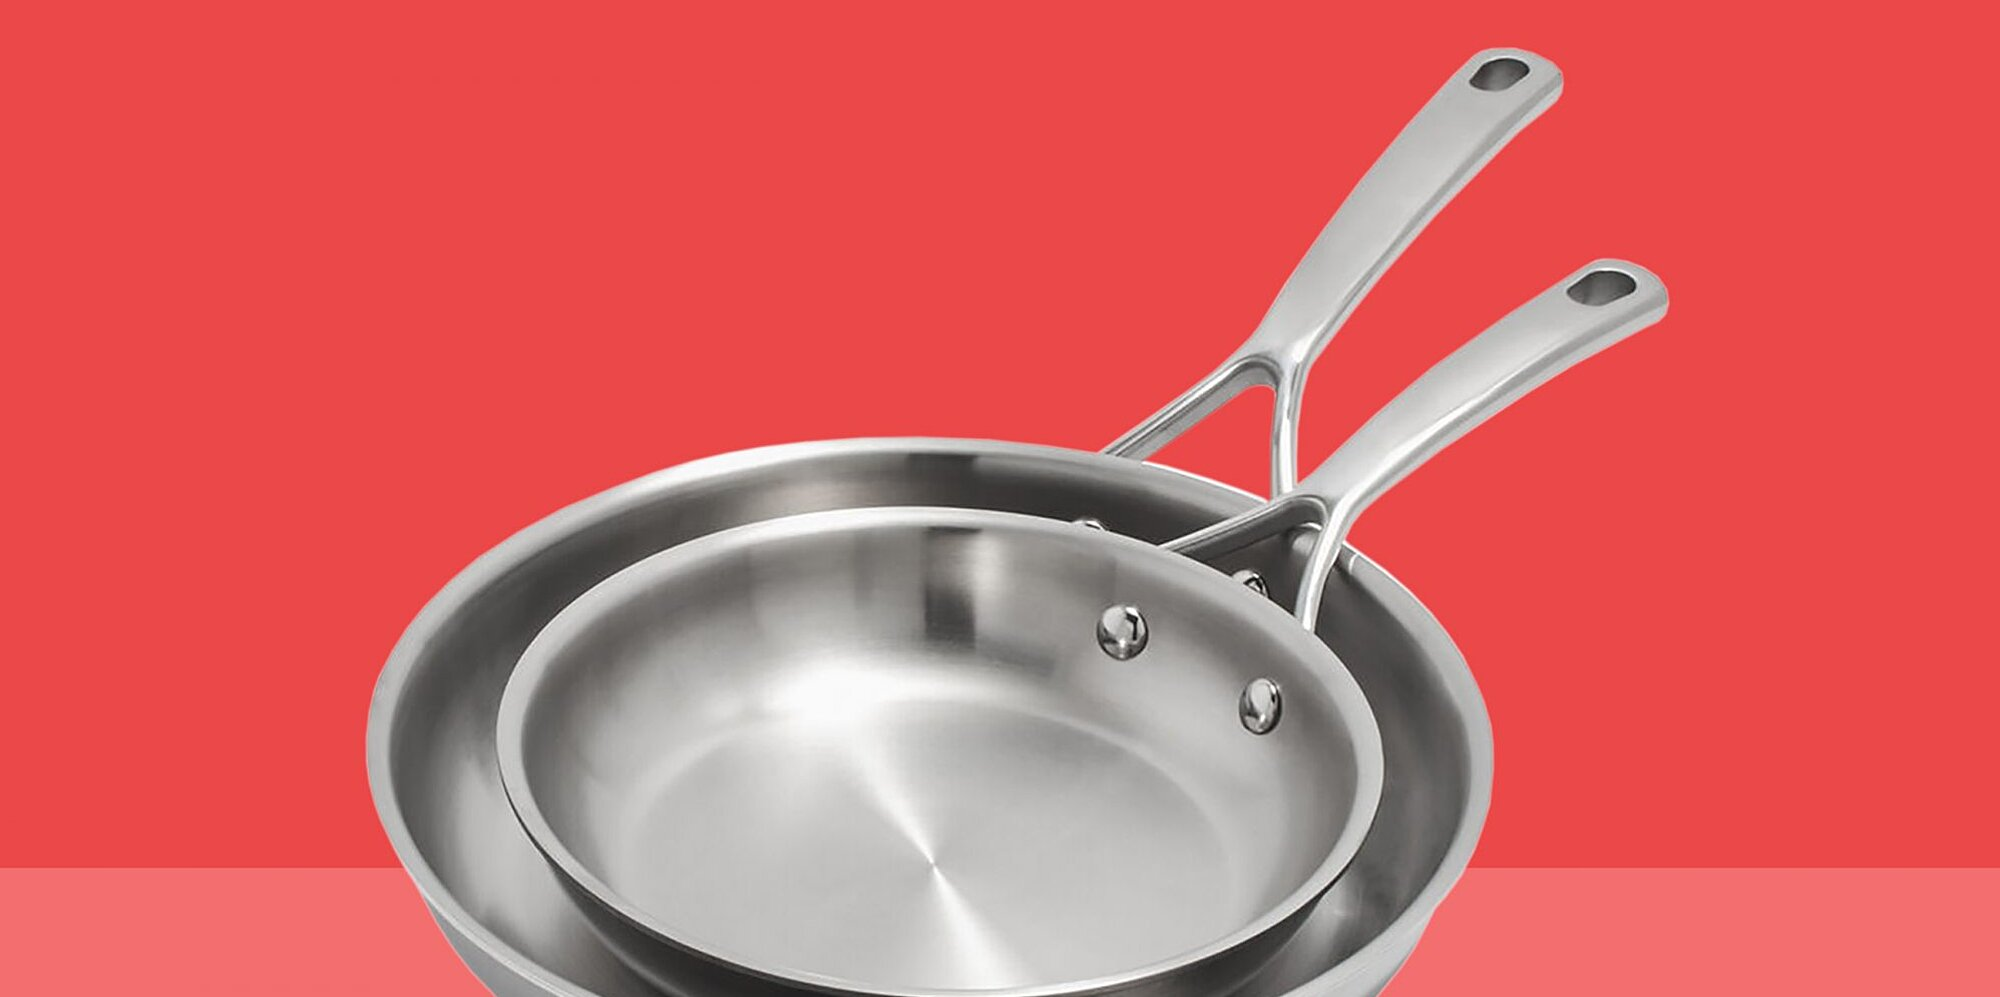 the 9 best frying pans for 2021 according to customers